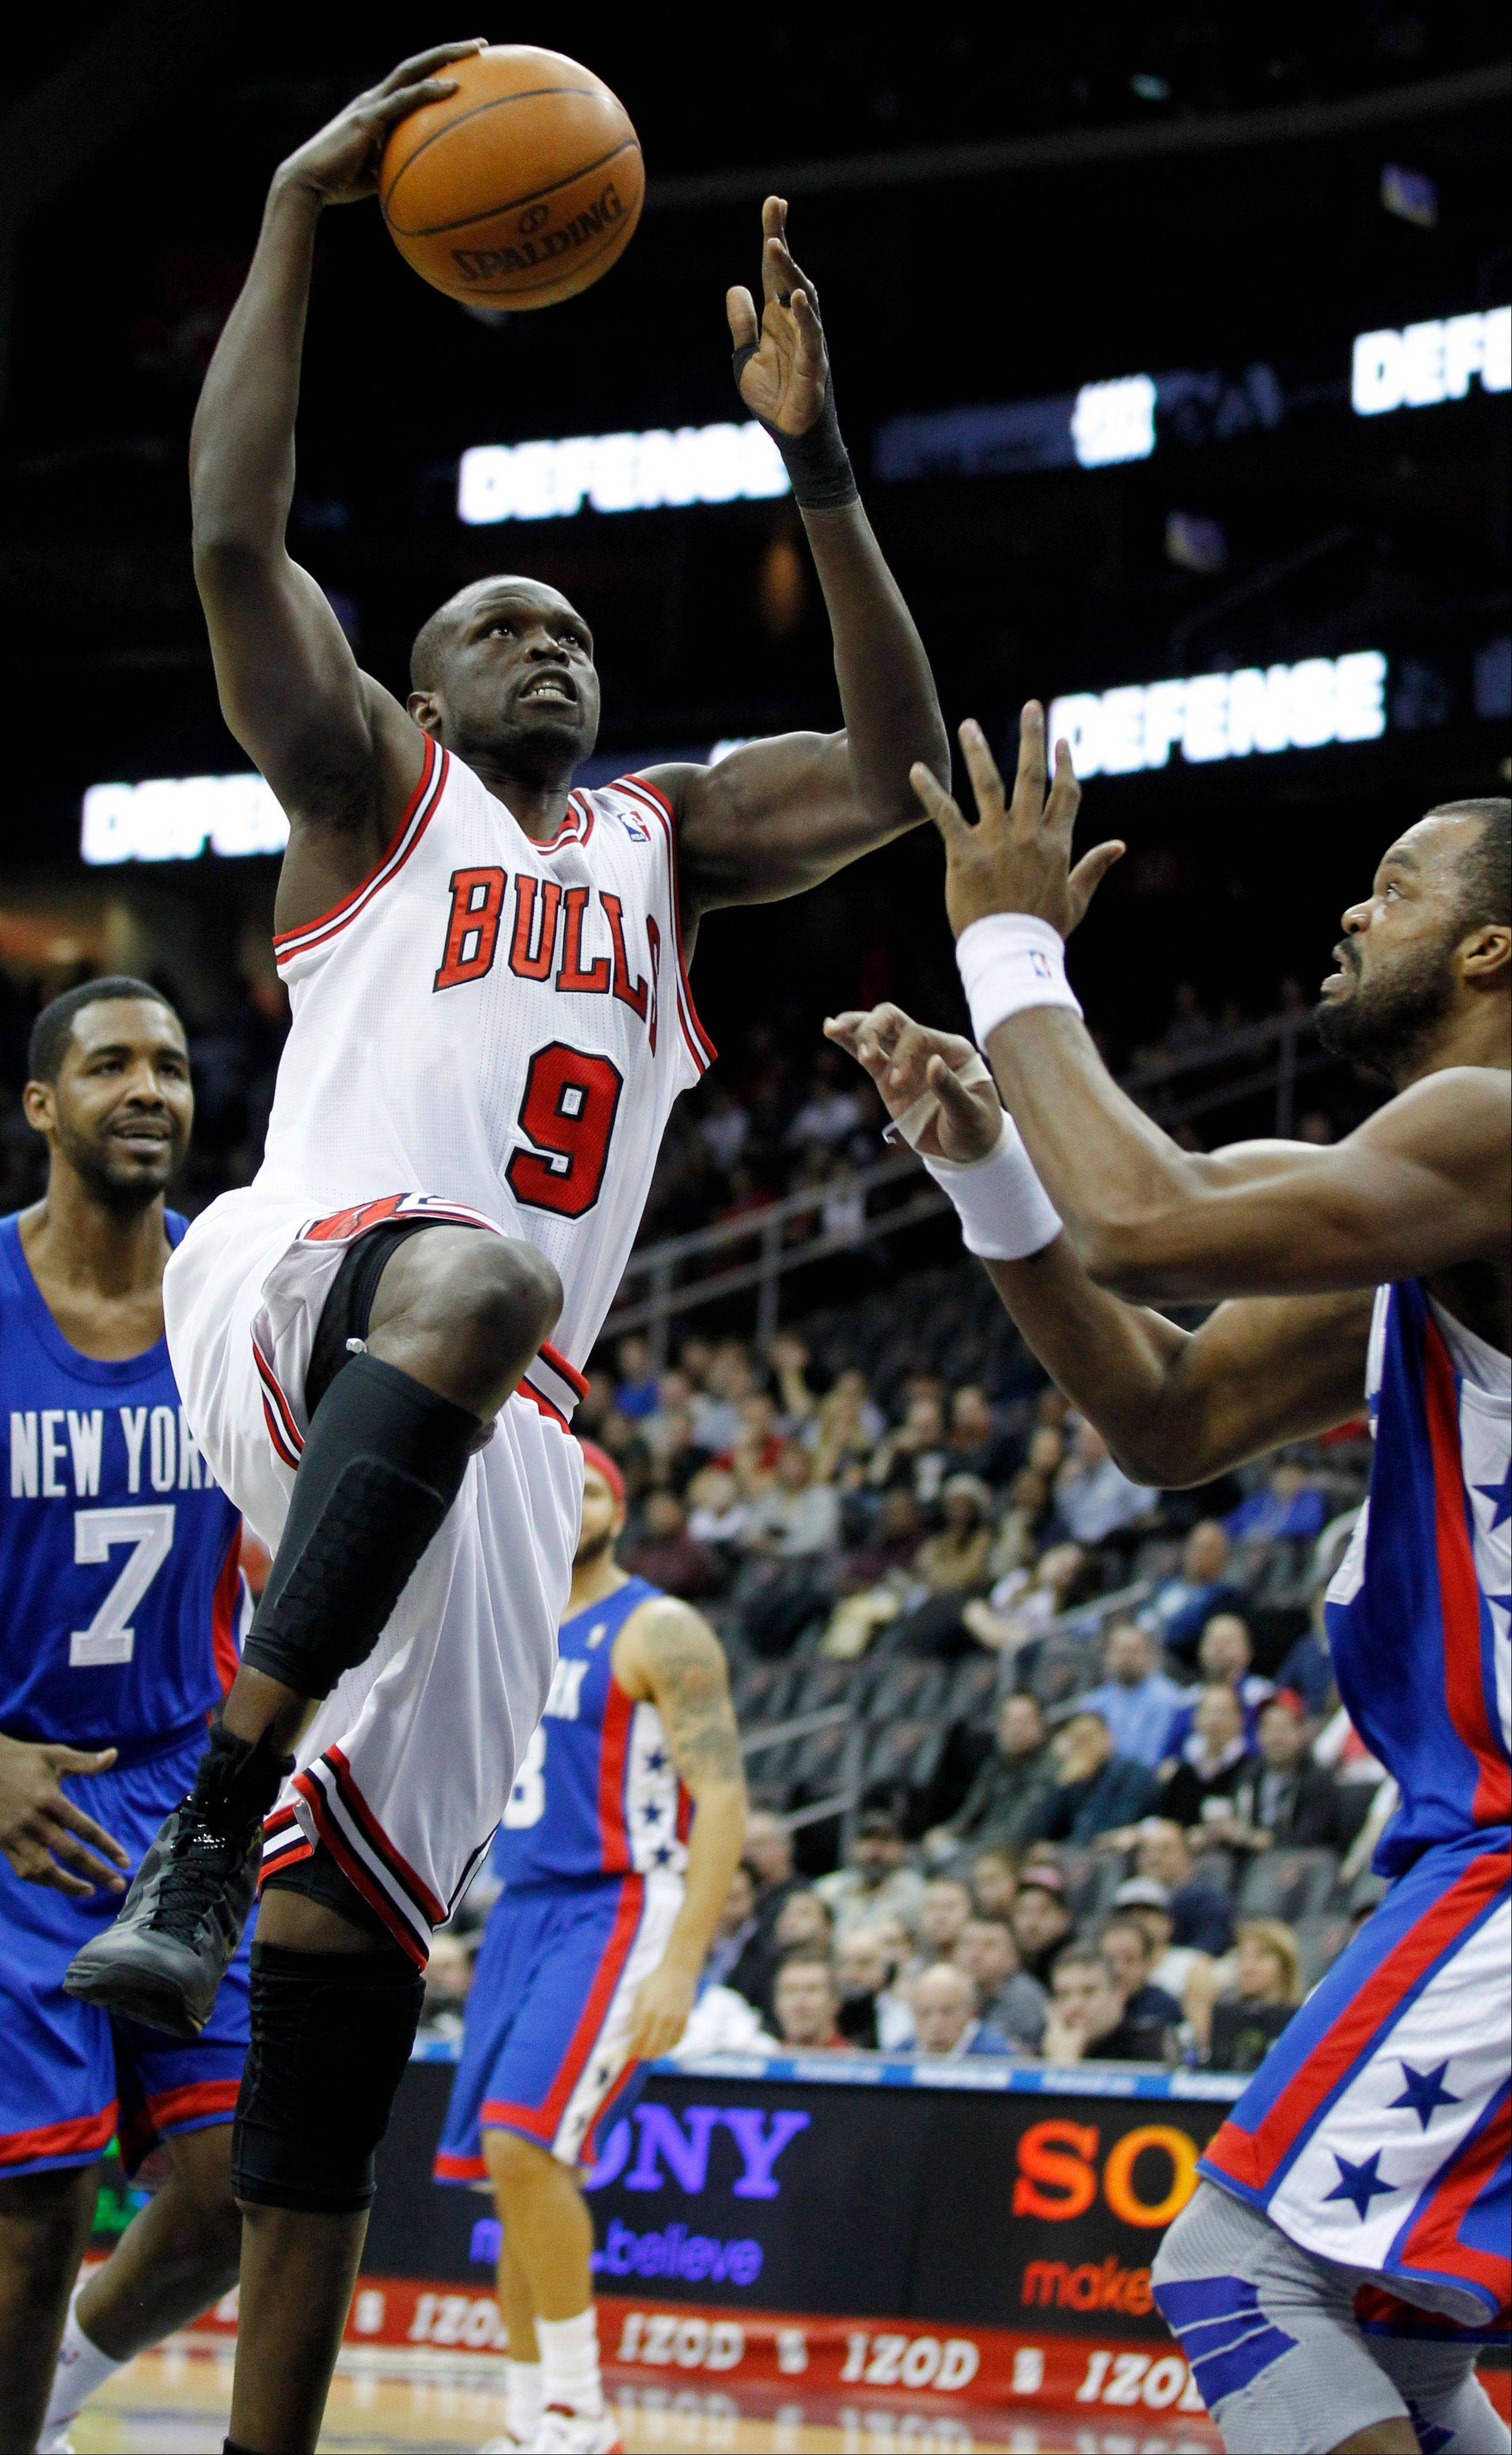 The Bulls' Luol Deng goes up for a shot against the Nets' Shelden Williams during the first quarter Monday night.